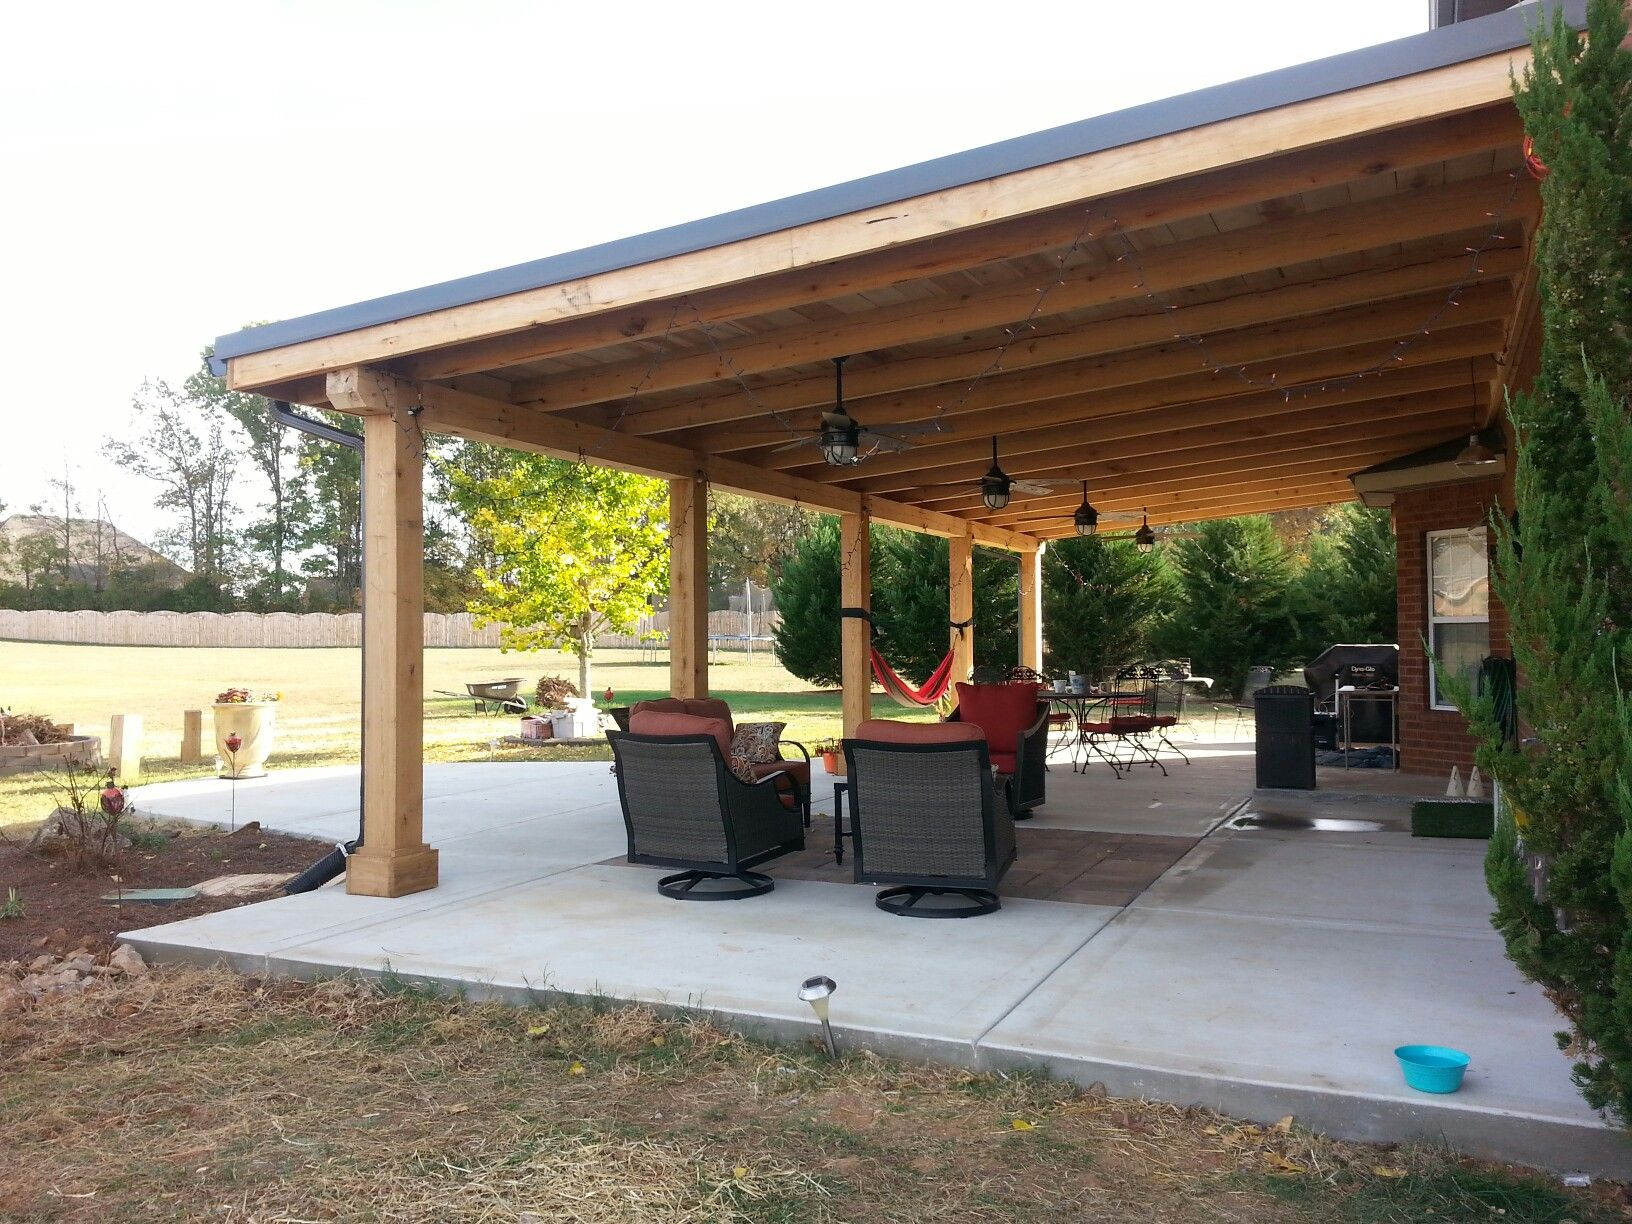 Don't love this so how could we avoid this look | Backyard ... on L Shaped Patio Ideas id=46852